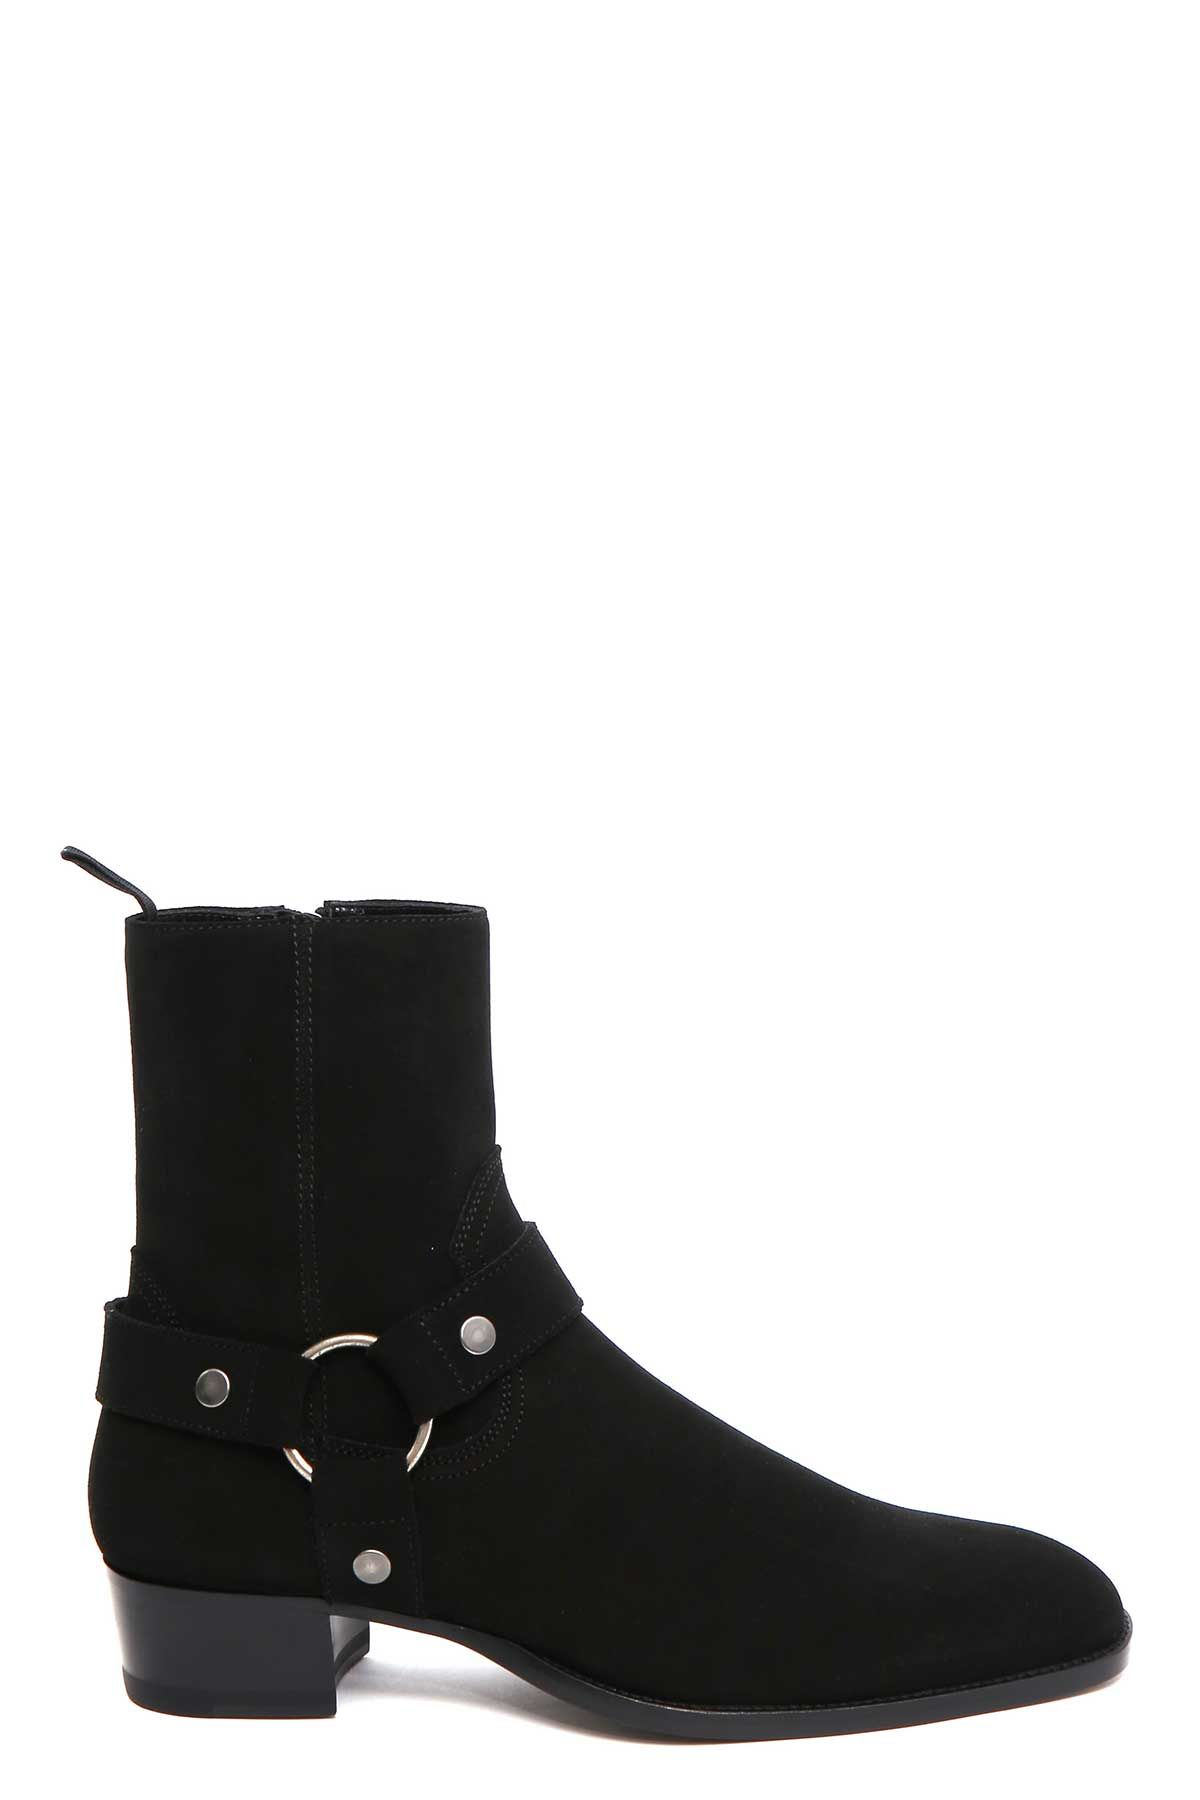 Saint Laurent wyatt Suede Boots